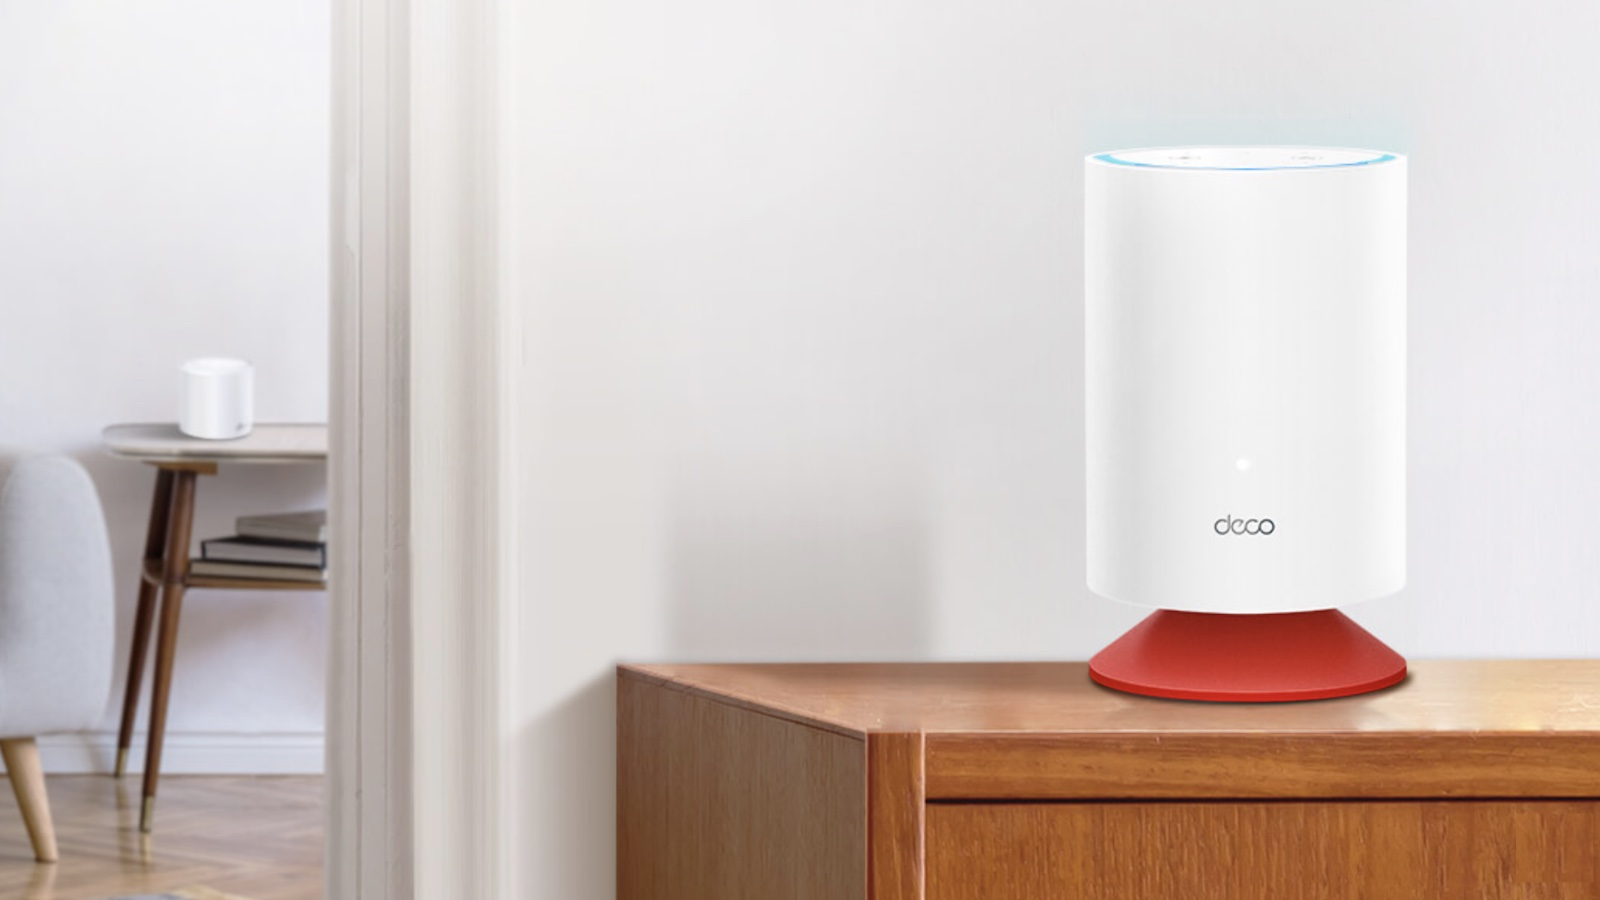 TP-Link Deco Voice X20 whole-home mesh Wi-Fi 6 system gives super-fast Wi-Fi 6 speeds